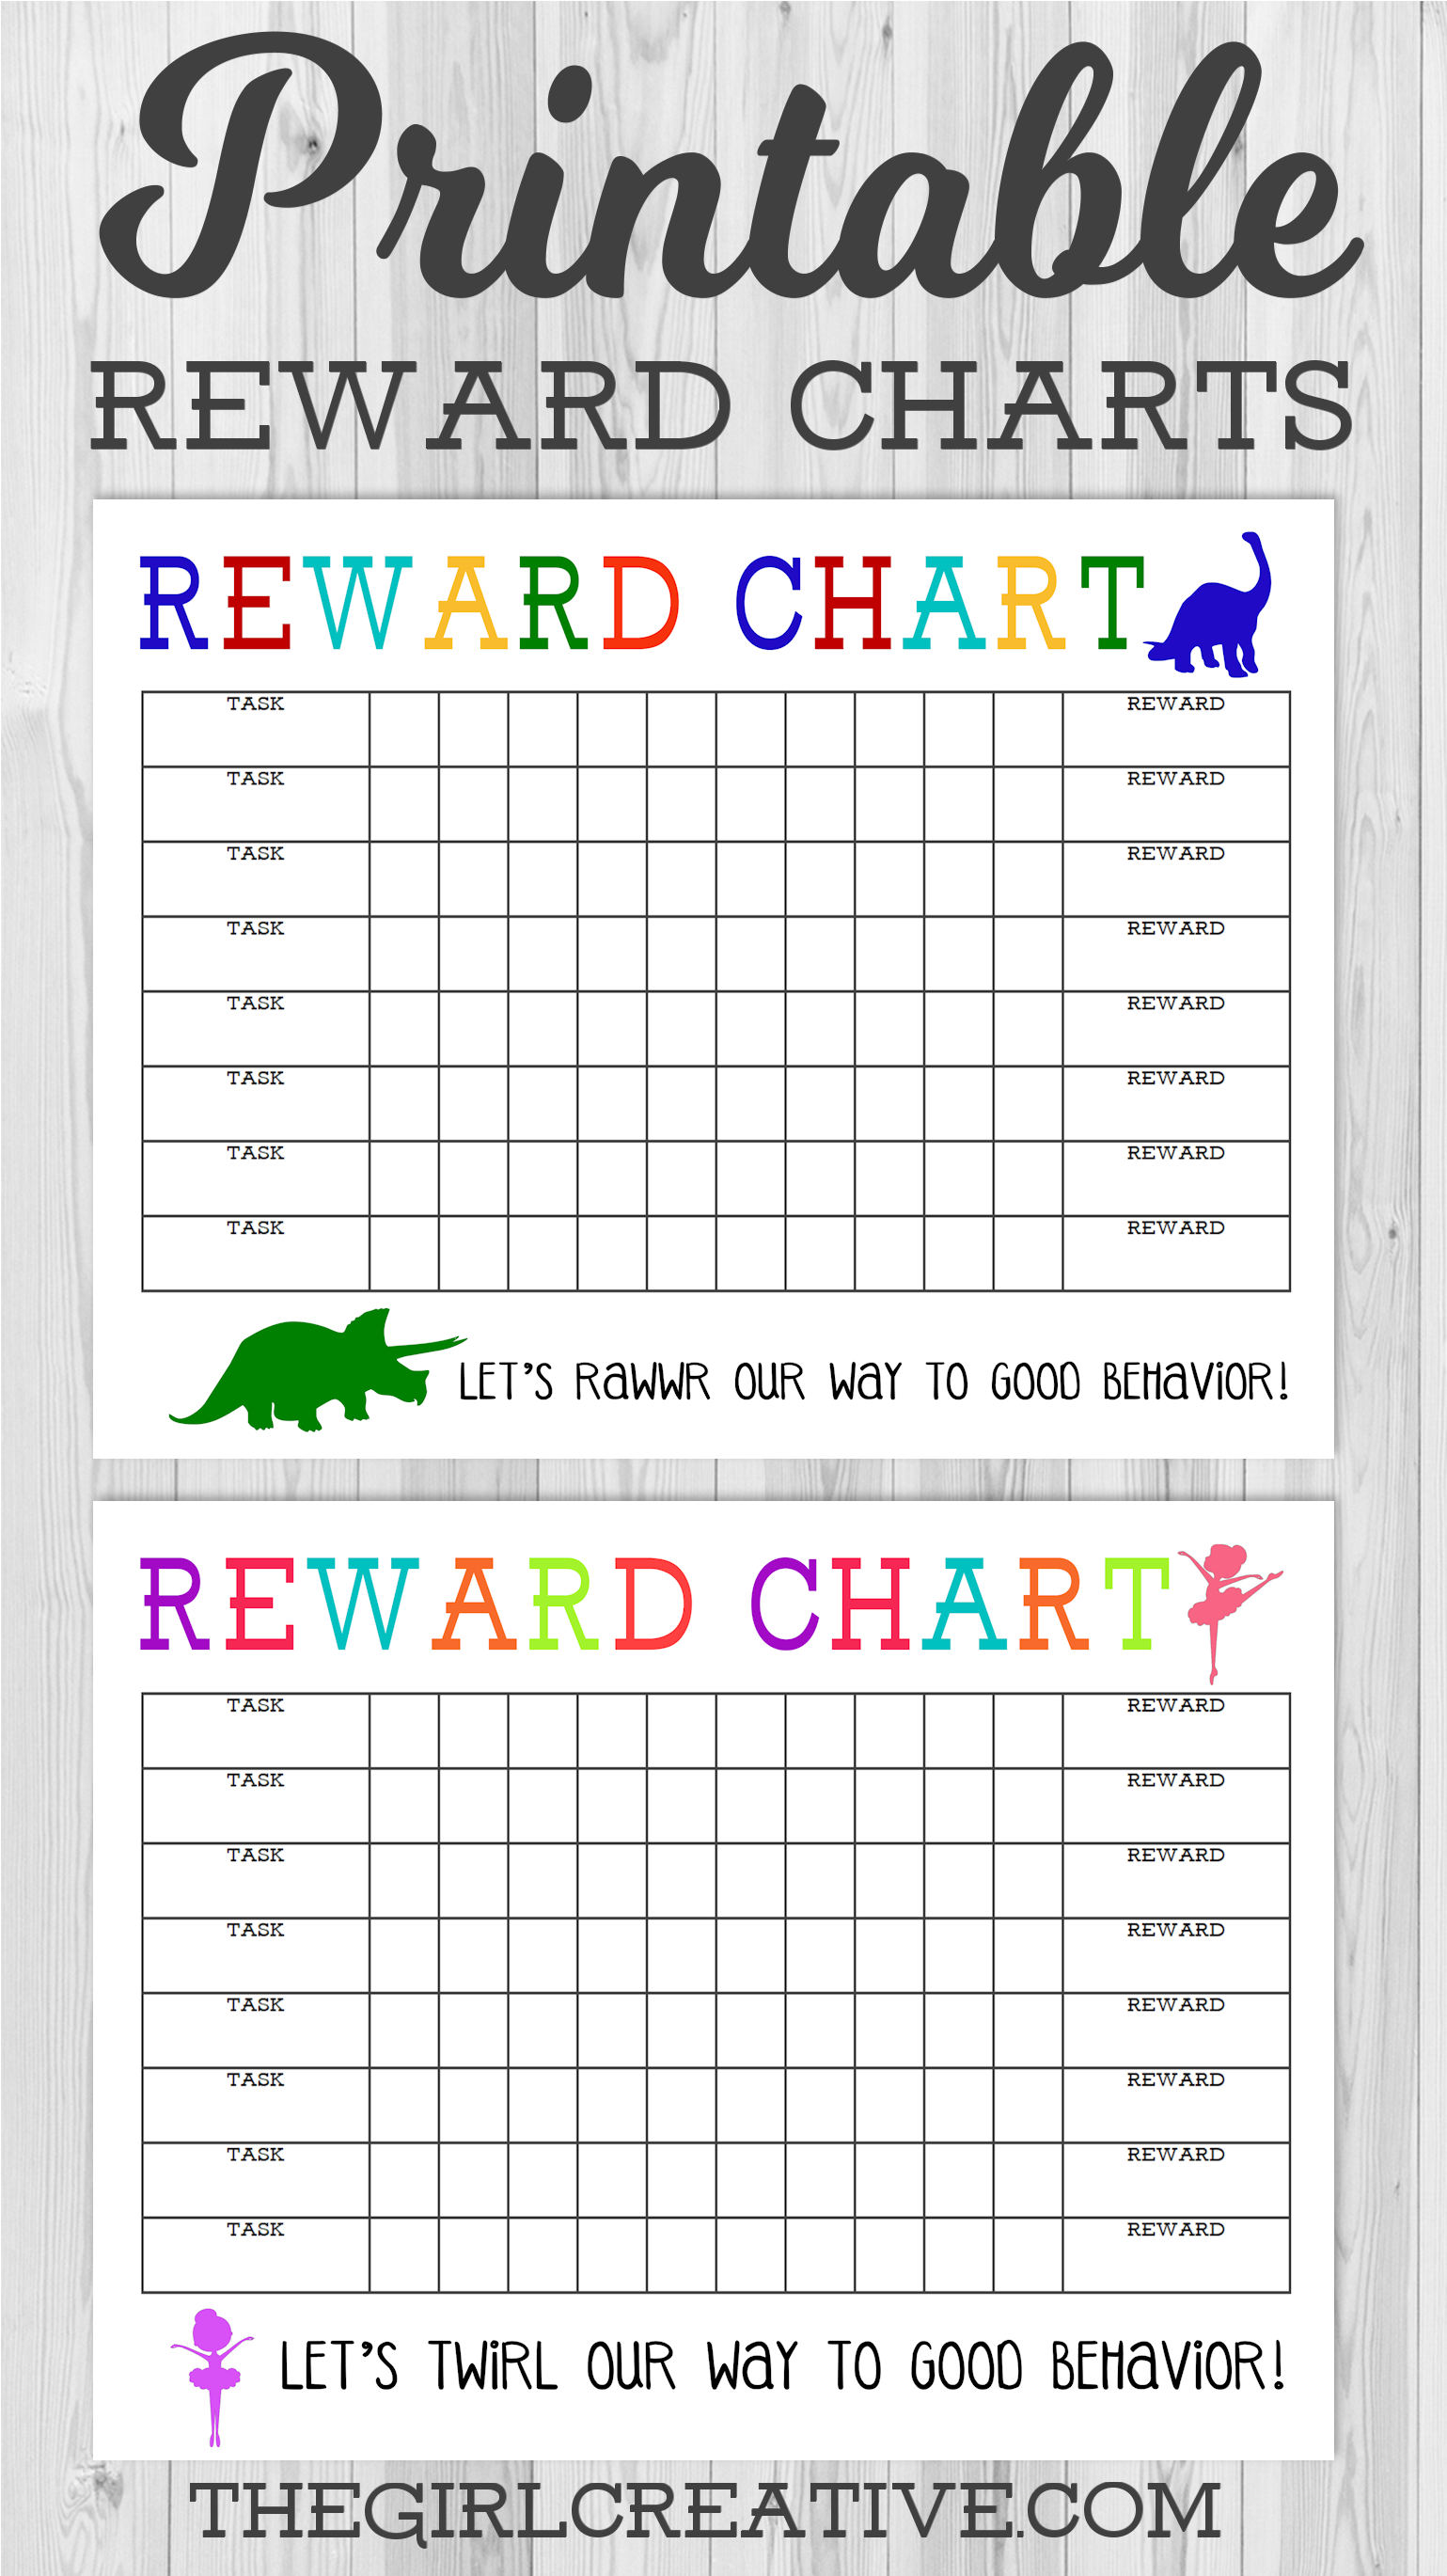 graphic regarding Free Printable Sticker Chart identified as Printable Benefit Chart - The Lady Imaginative